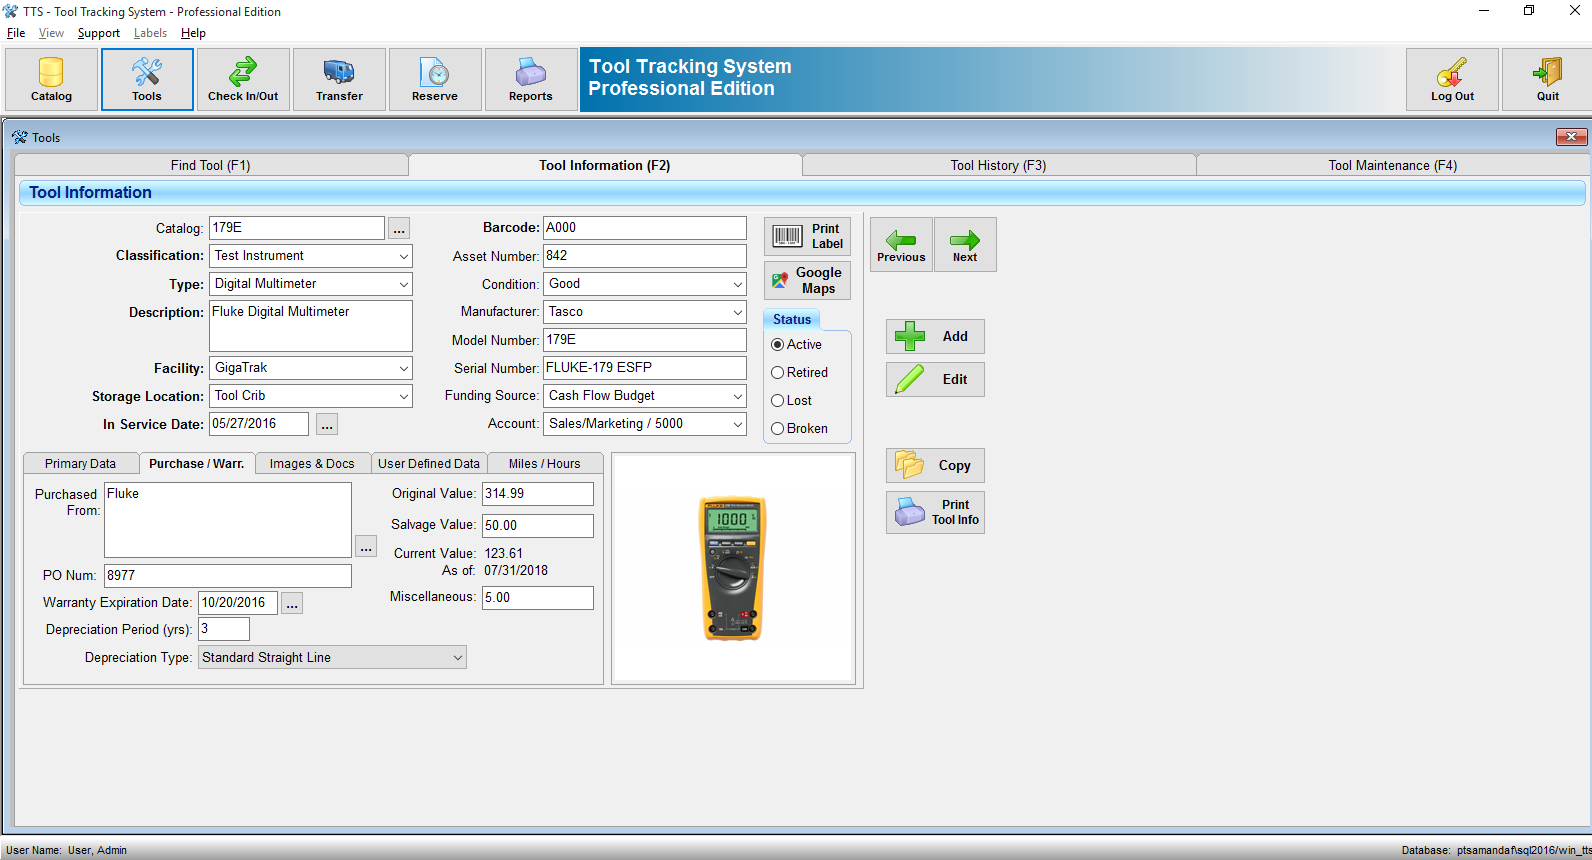 Tool Tracking System | Equipment & Asset Tracking Software